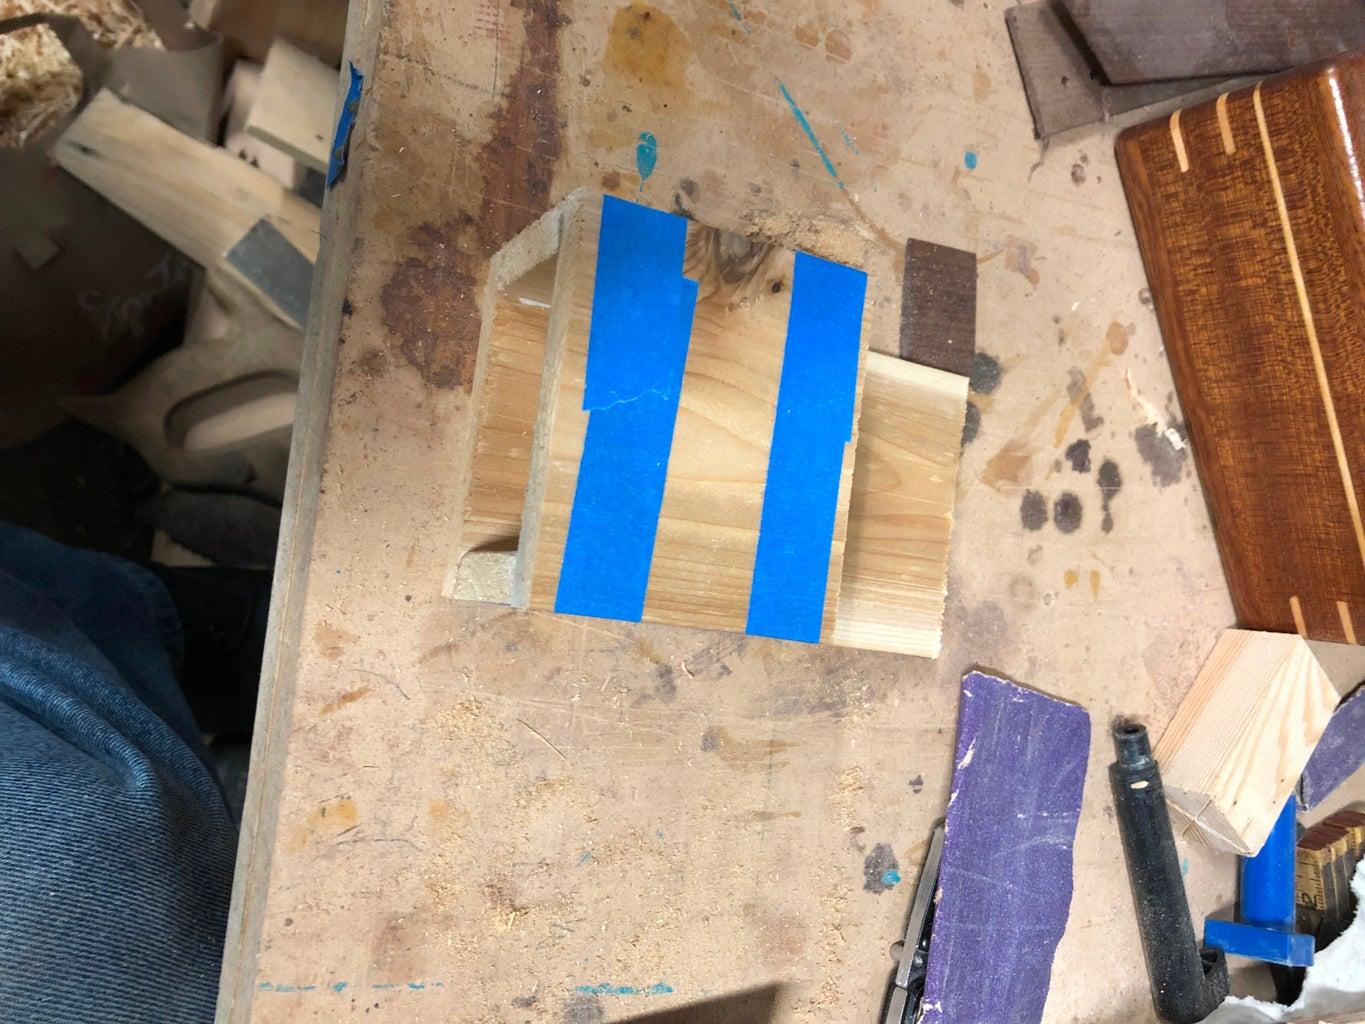 Glue Up the Body